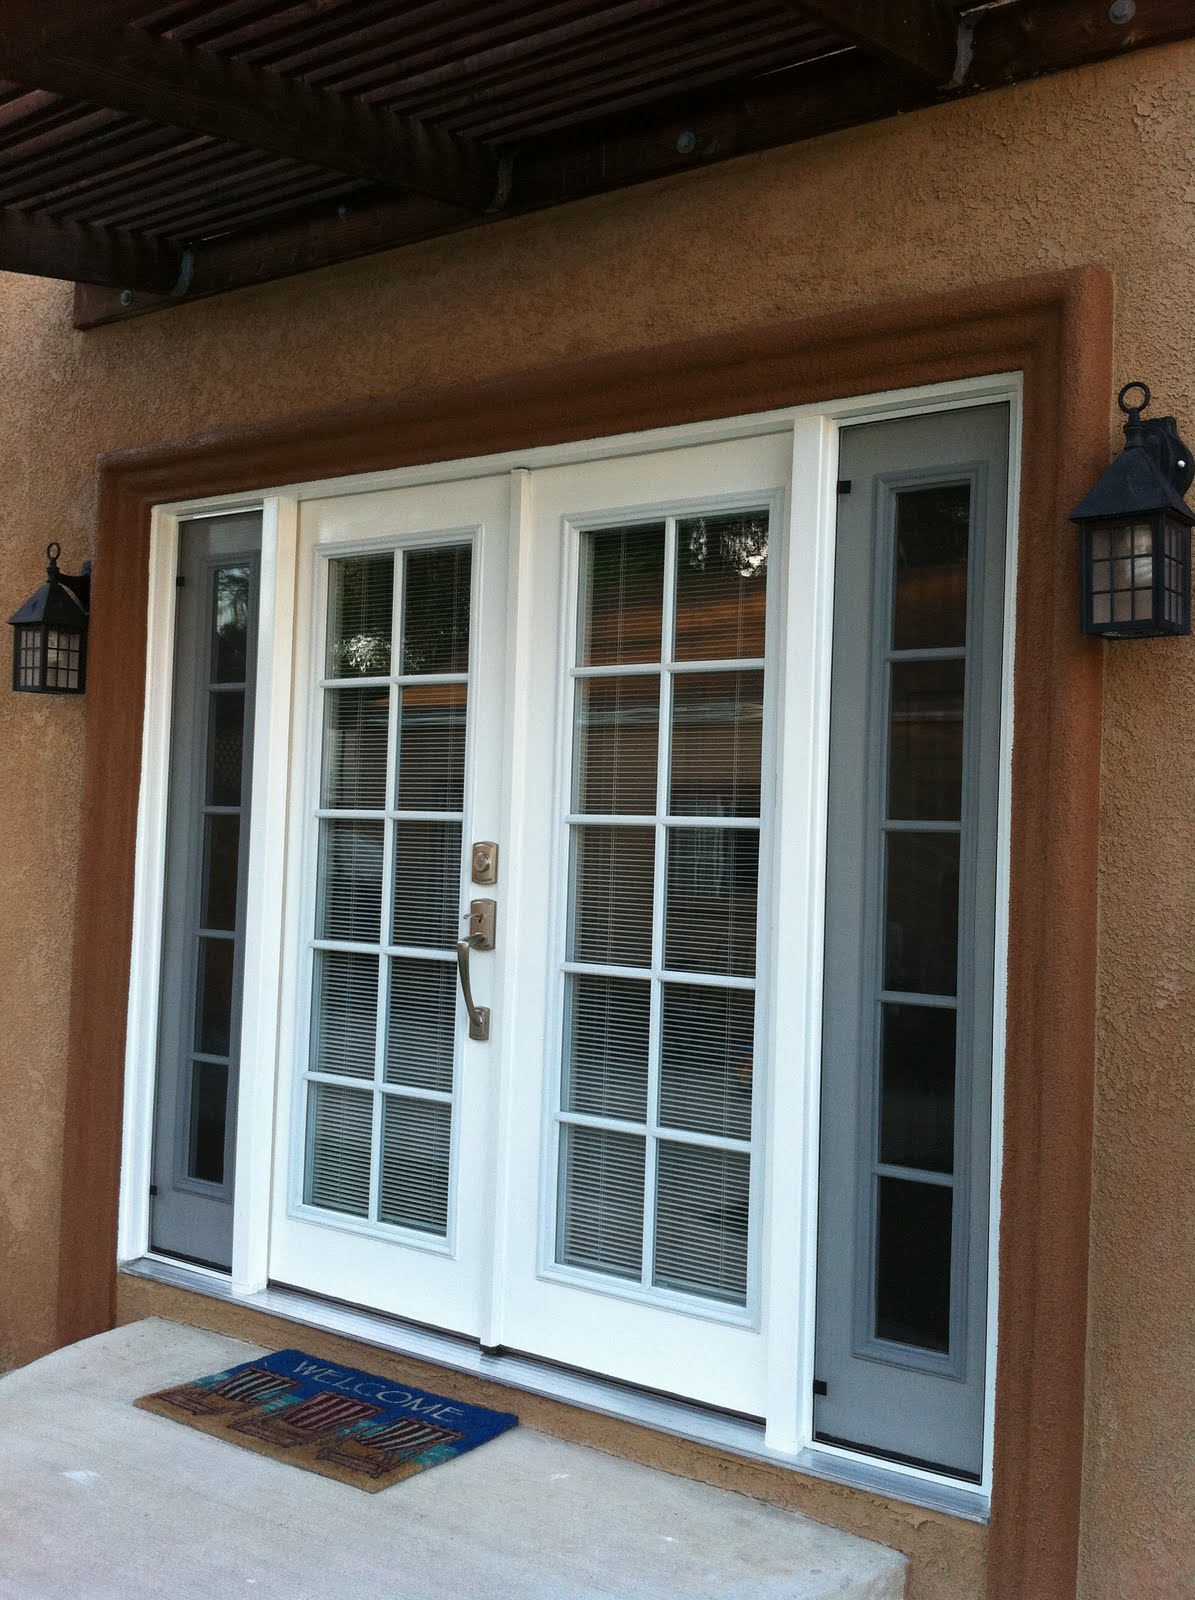 thb construction  back door replaced with double french door with side opening windows